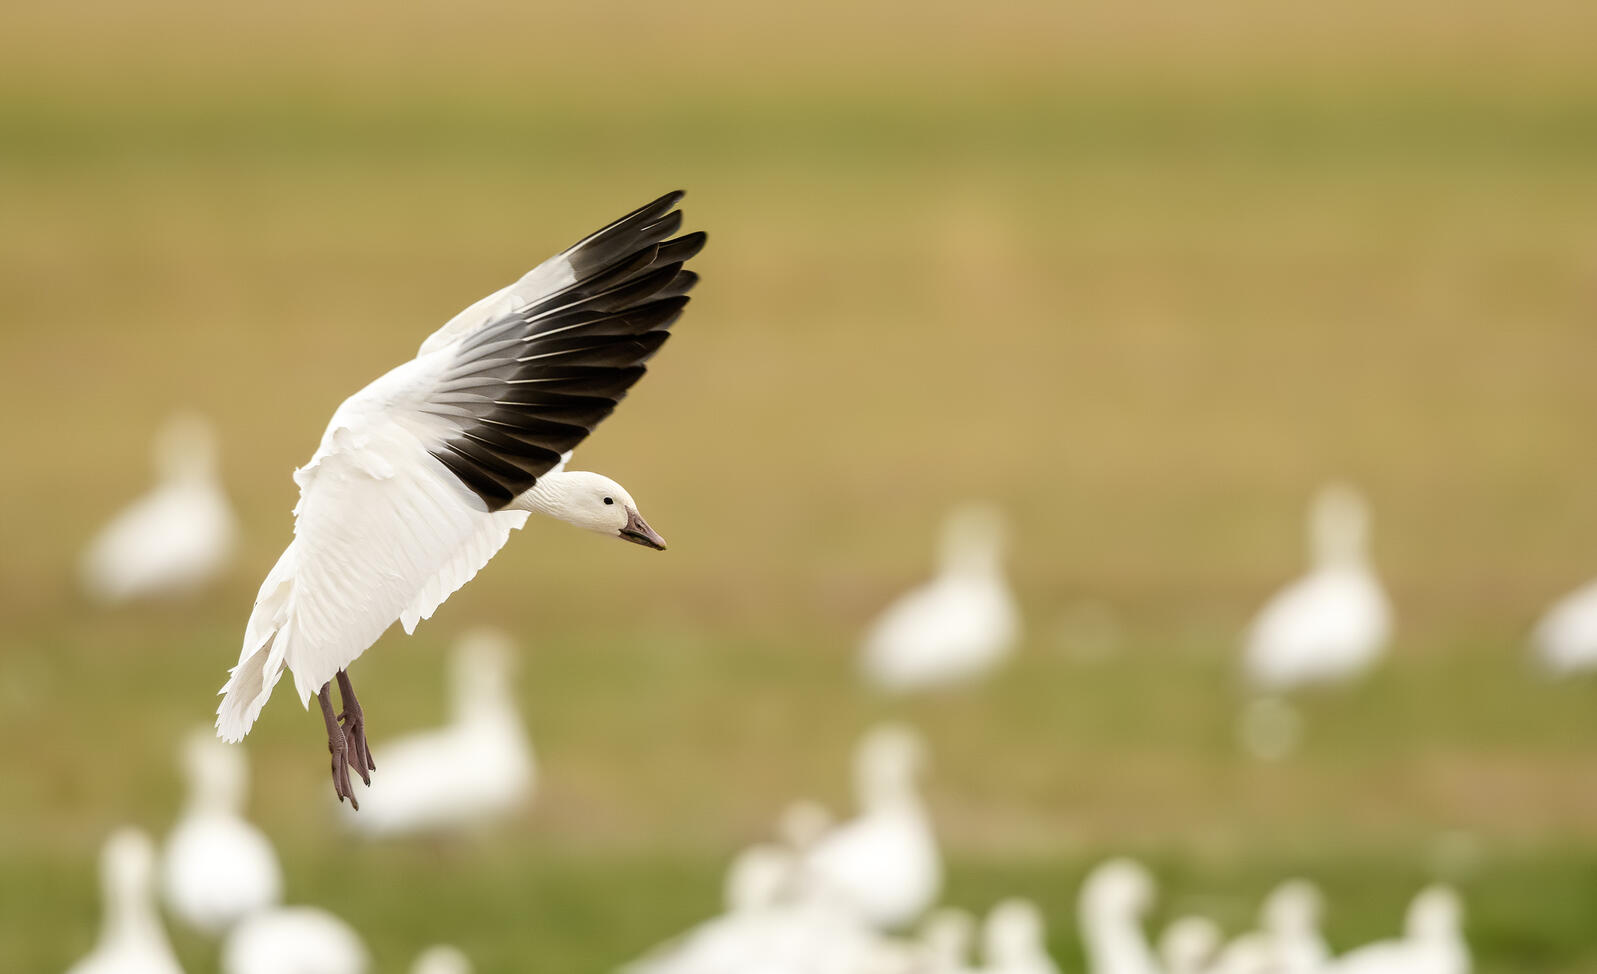 A white goose with upraised white wings with black wingtips is about to land on the ground.